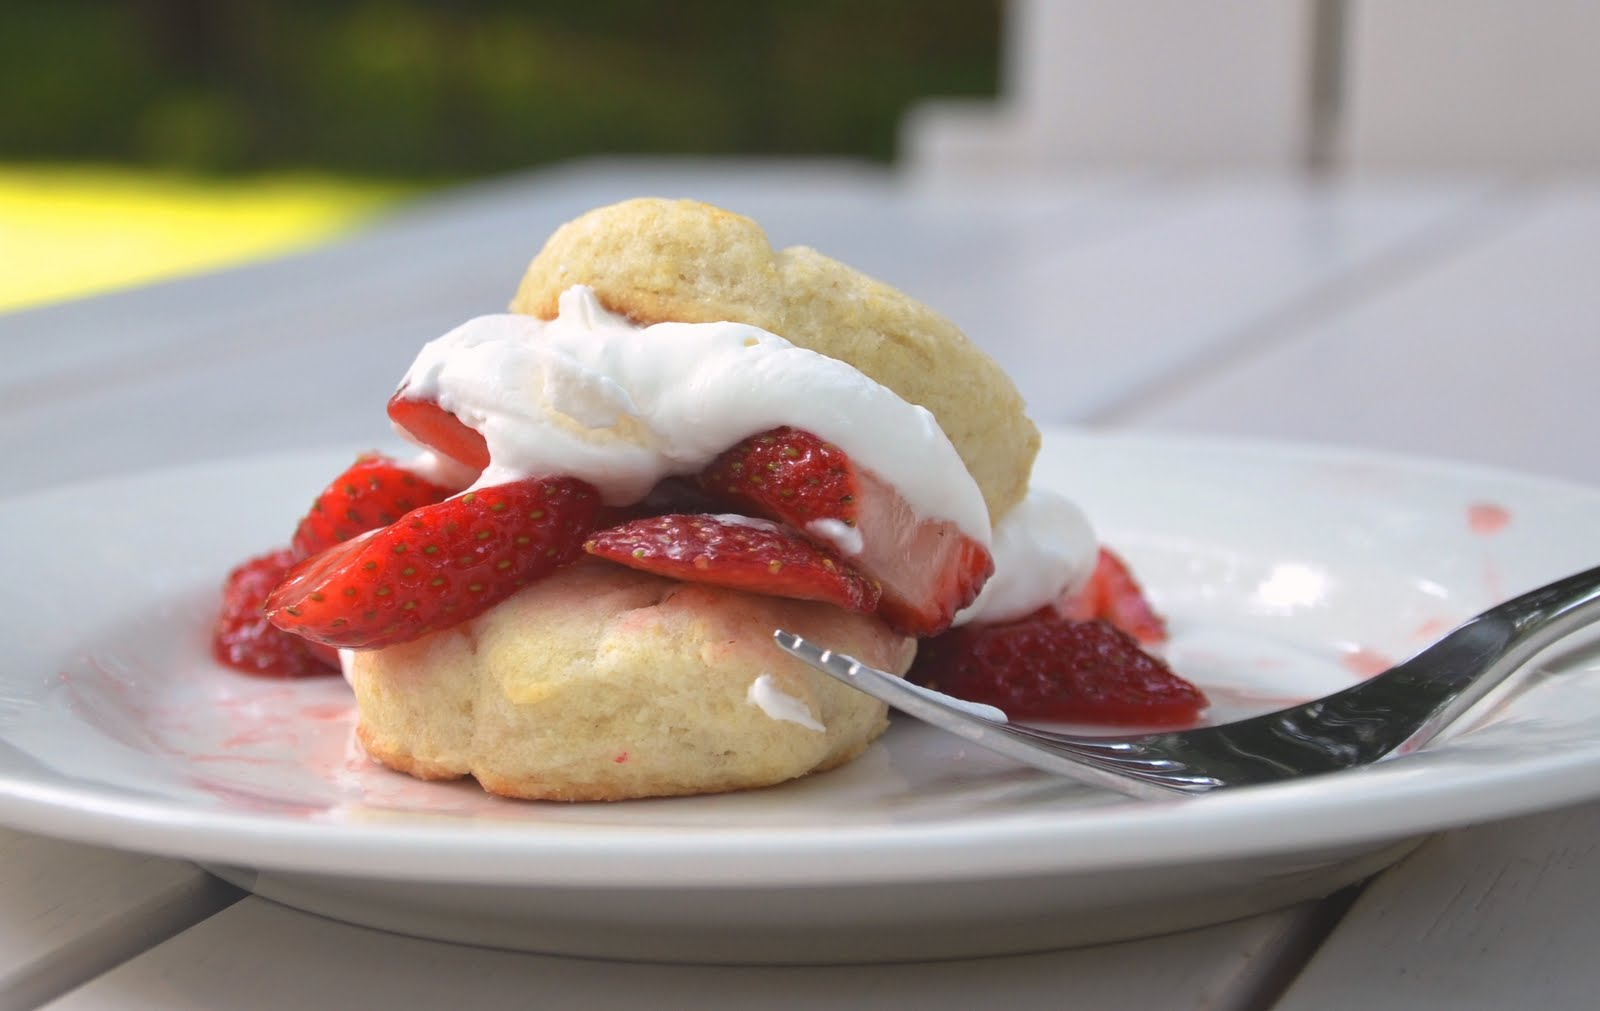 carlyklock: Strawberry Shortcake Sliders